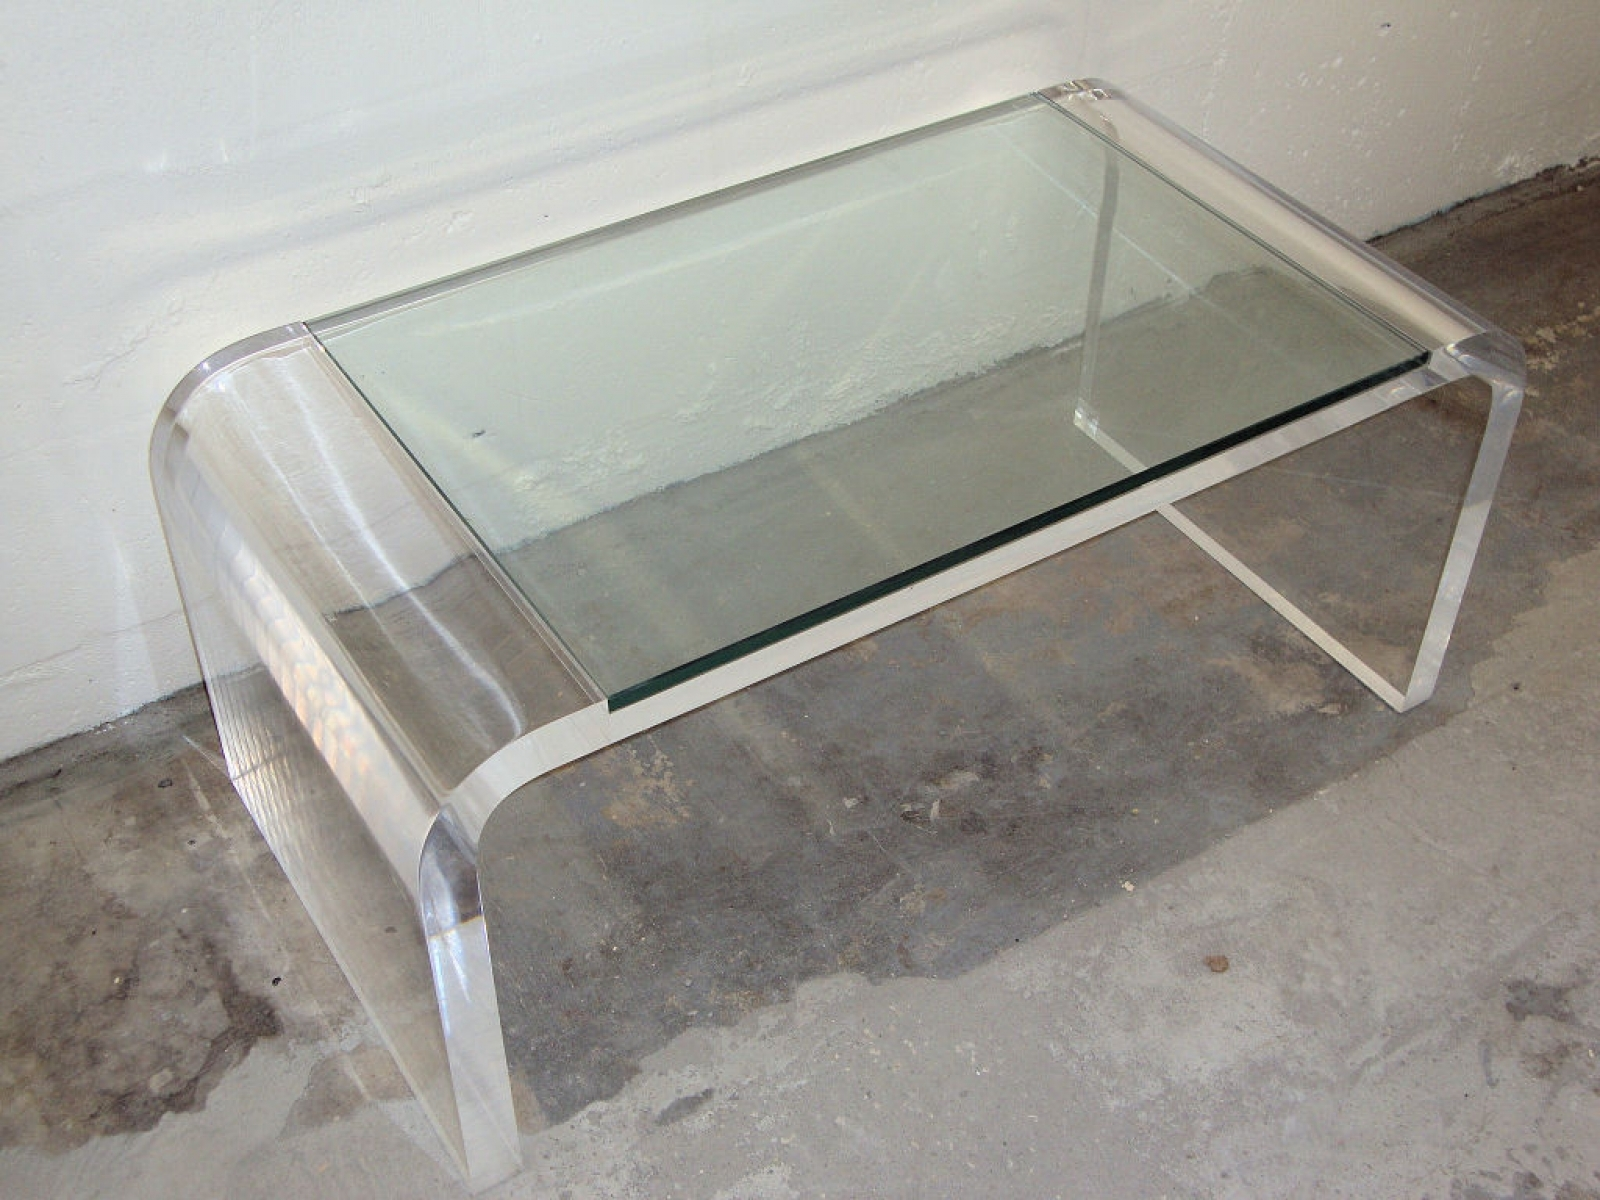 coffee table elegant acrylic tables with minimalst side design inside plexiglass small round lucite desk square accent leather ott chairs modern black marble end mid century clear